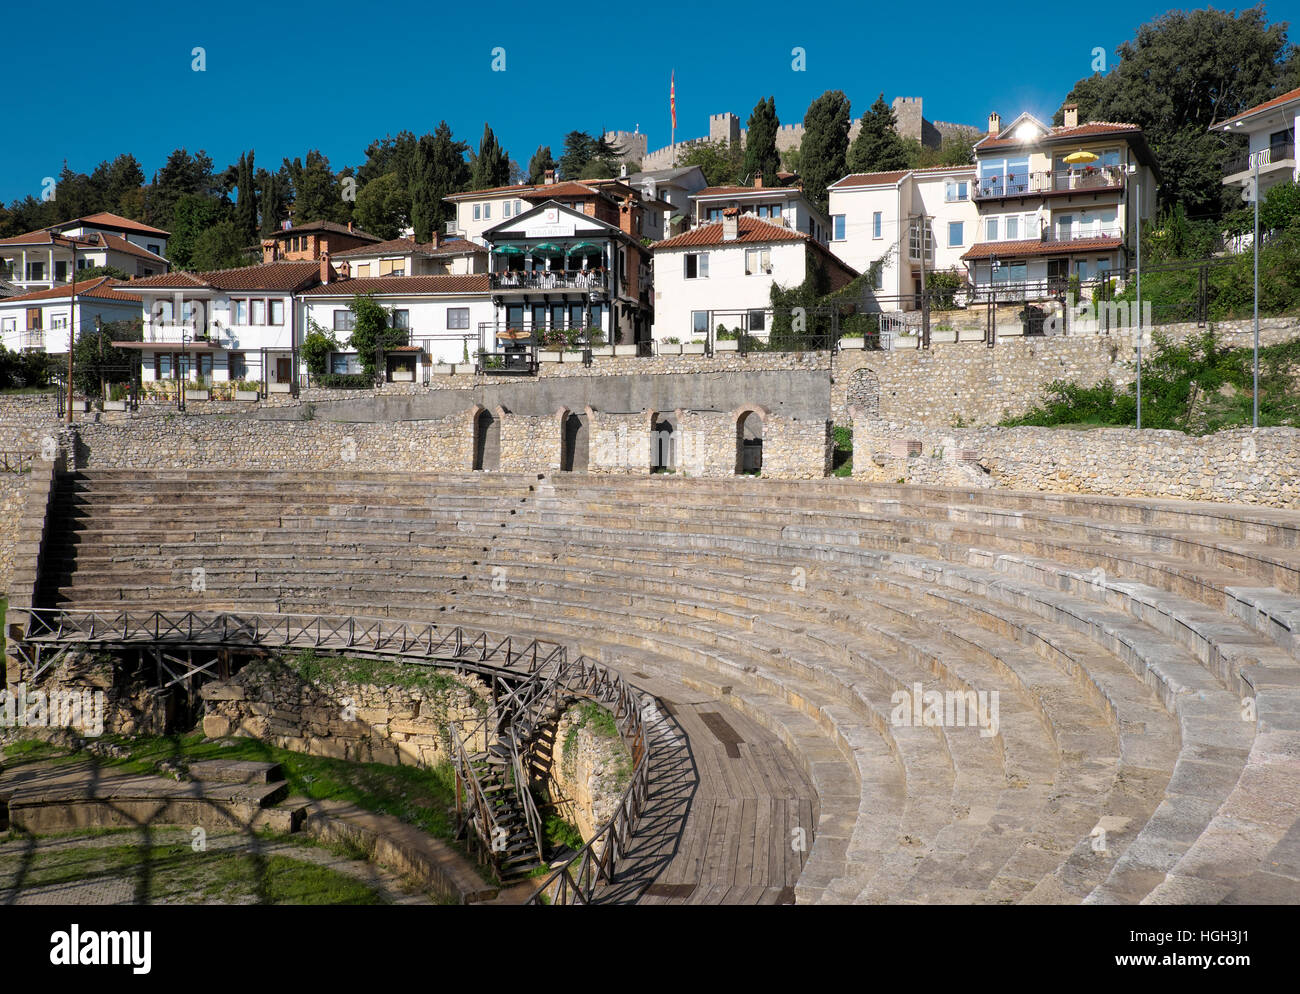 Ancient theater in the historic center, Ohrid, Macedonia - Stock Image